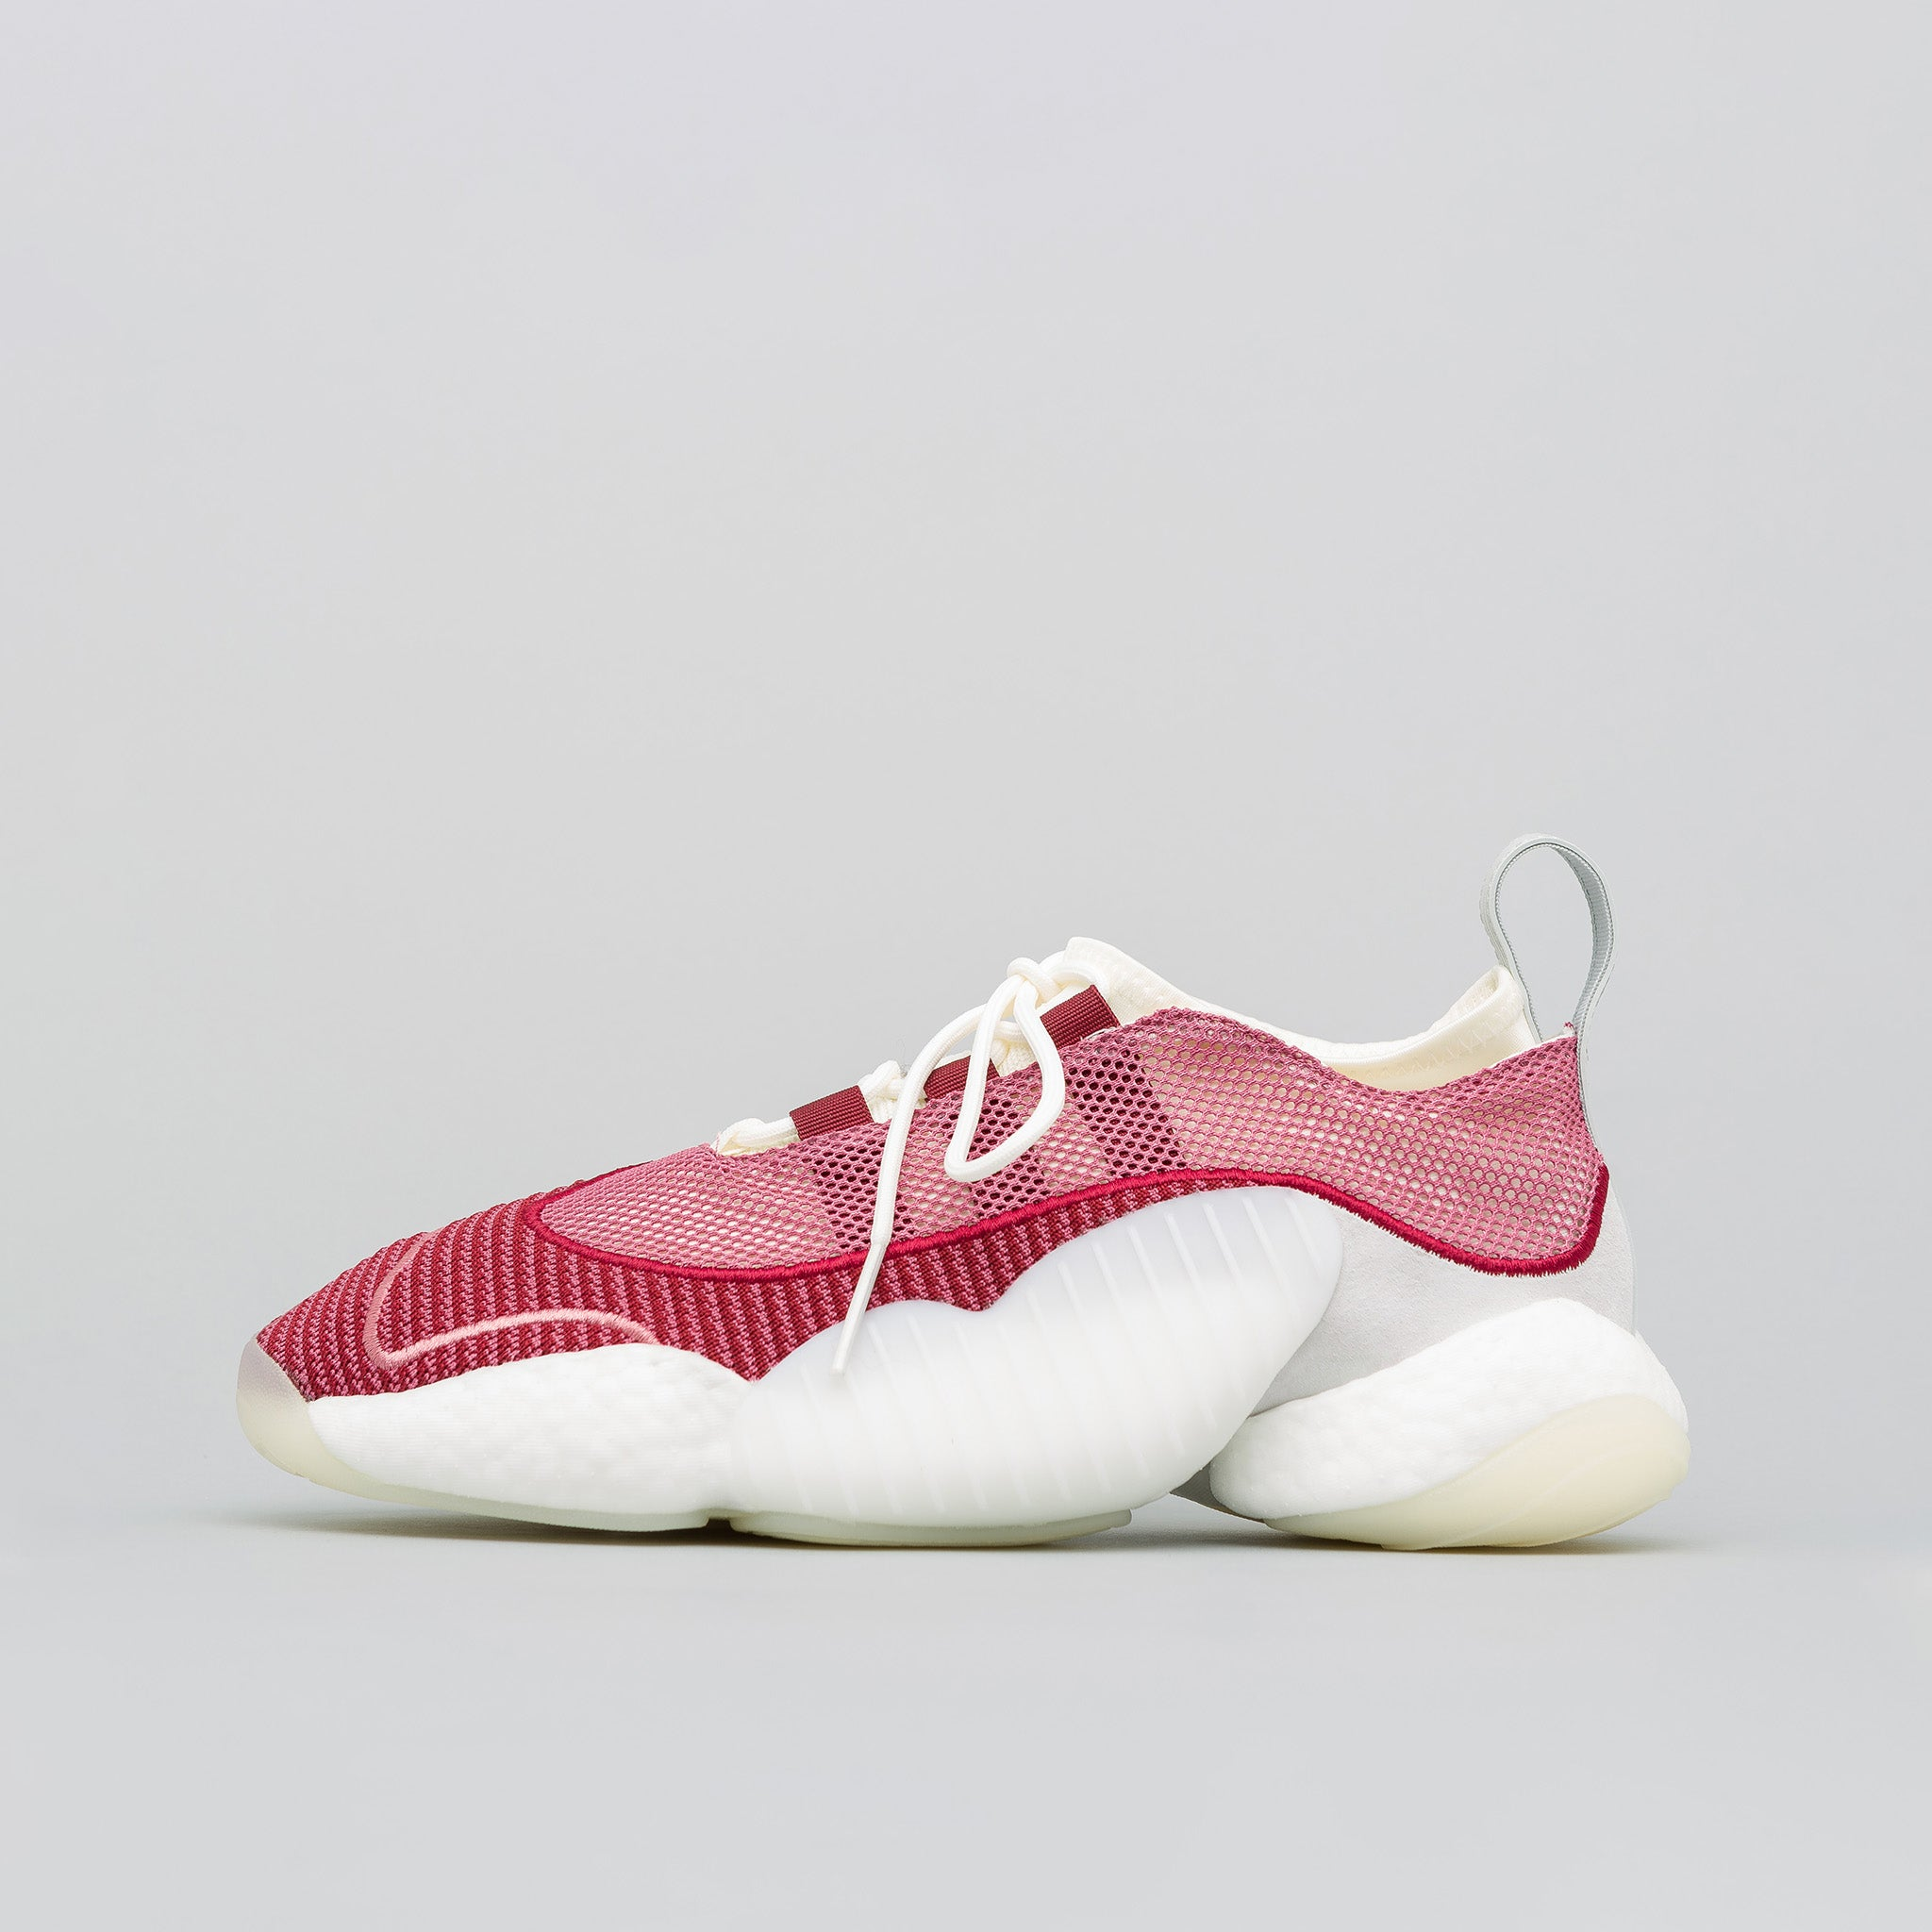 new style 3597a 6879d Crazy BYW II in Trace MaroonWhite